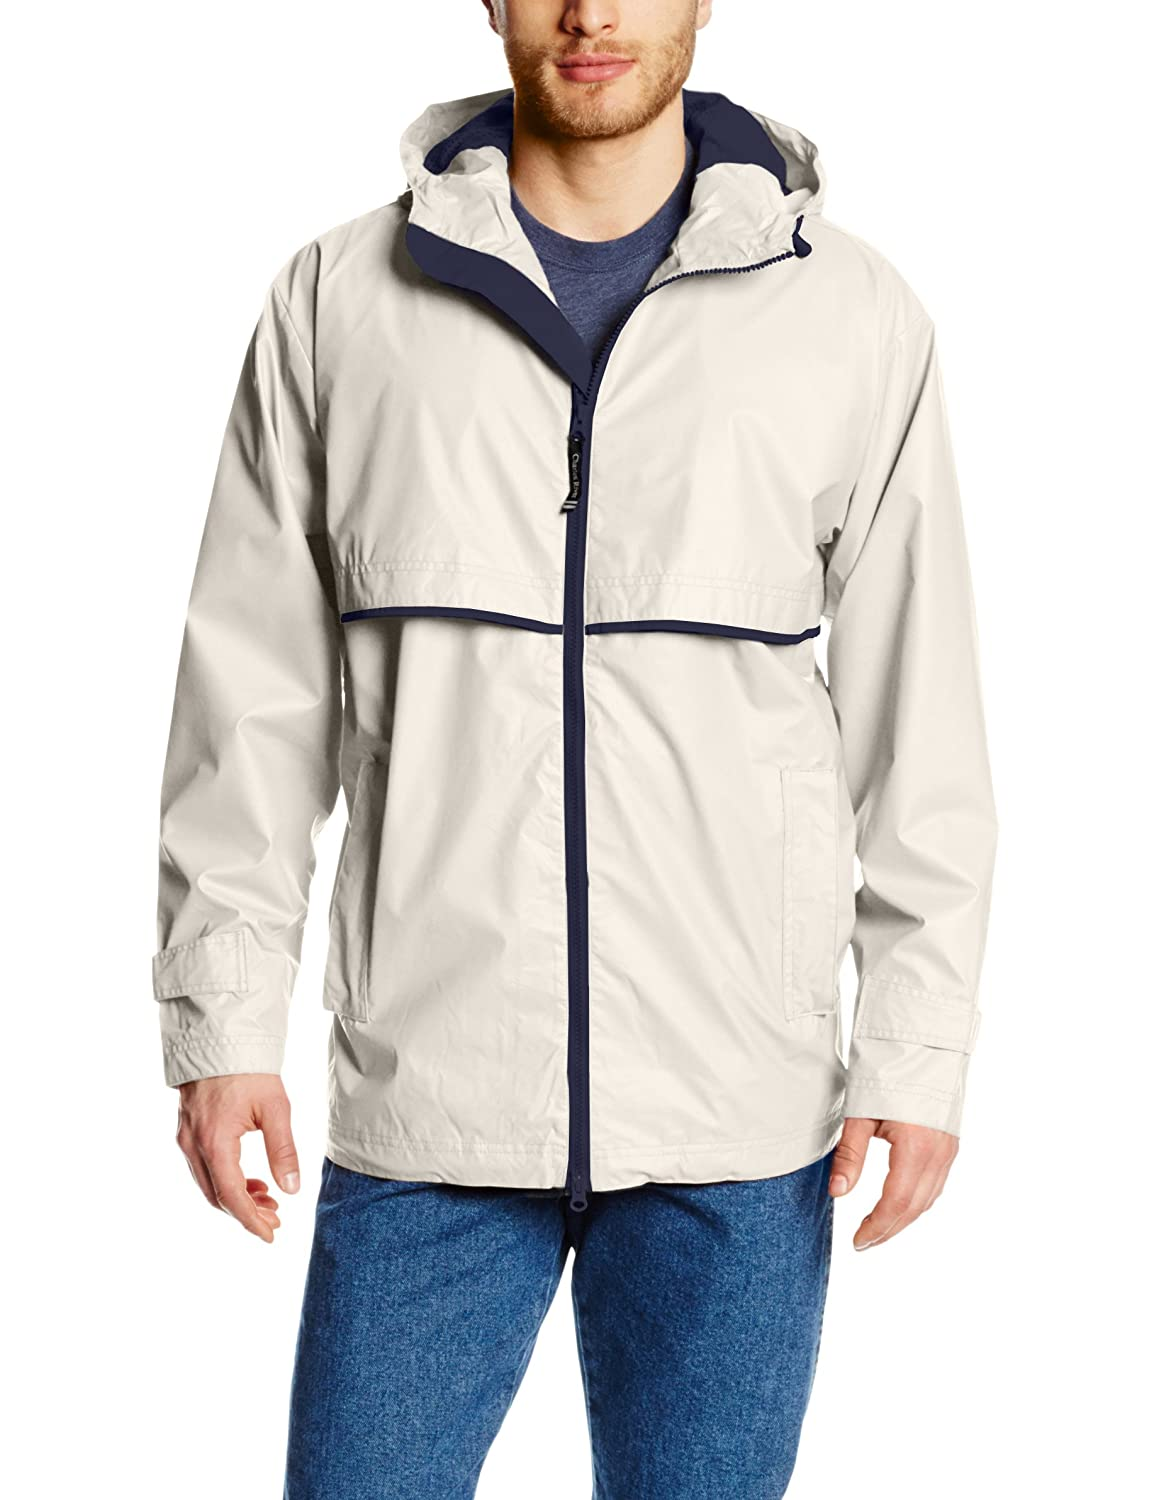 Charles River Apparel Men's New Englander Waterproof Rain Jacket 9199